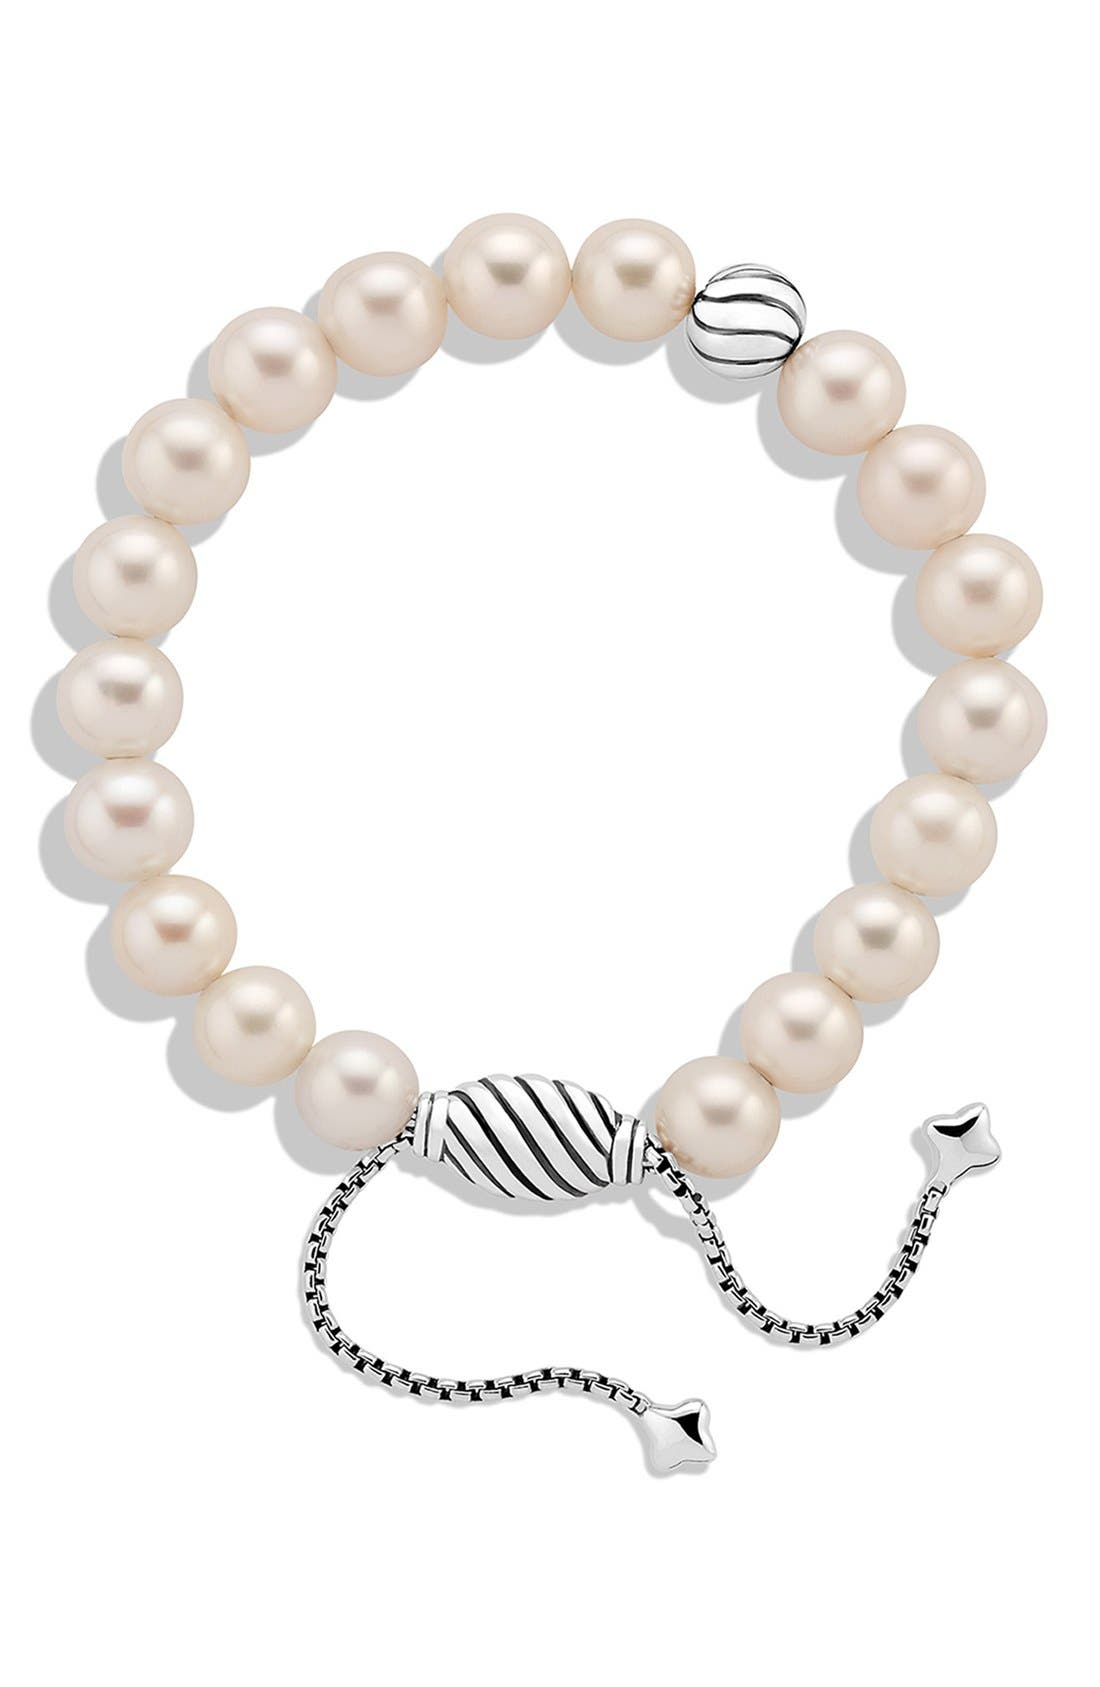 'Spiritual Beads' Bracelet with Pearls,                             Alternate thumbnail 2, color,                             PEARL